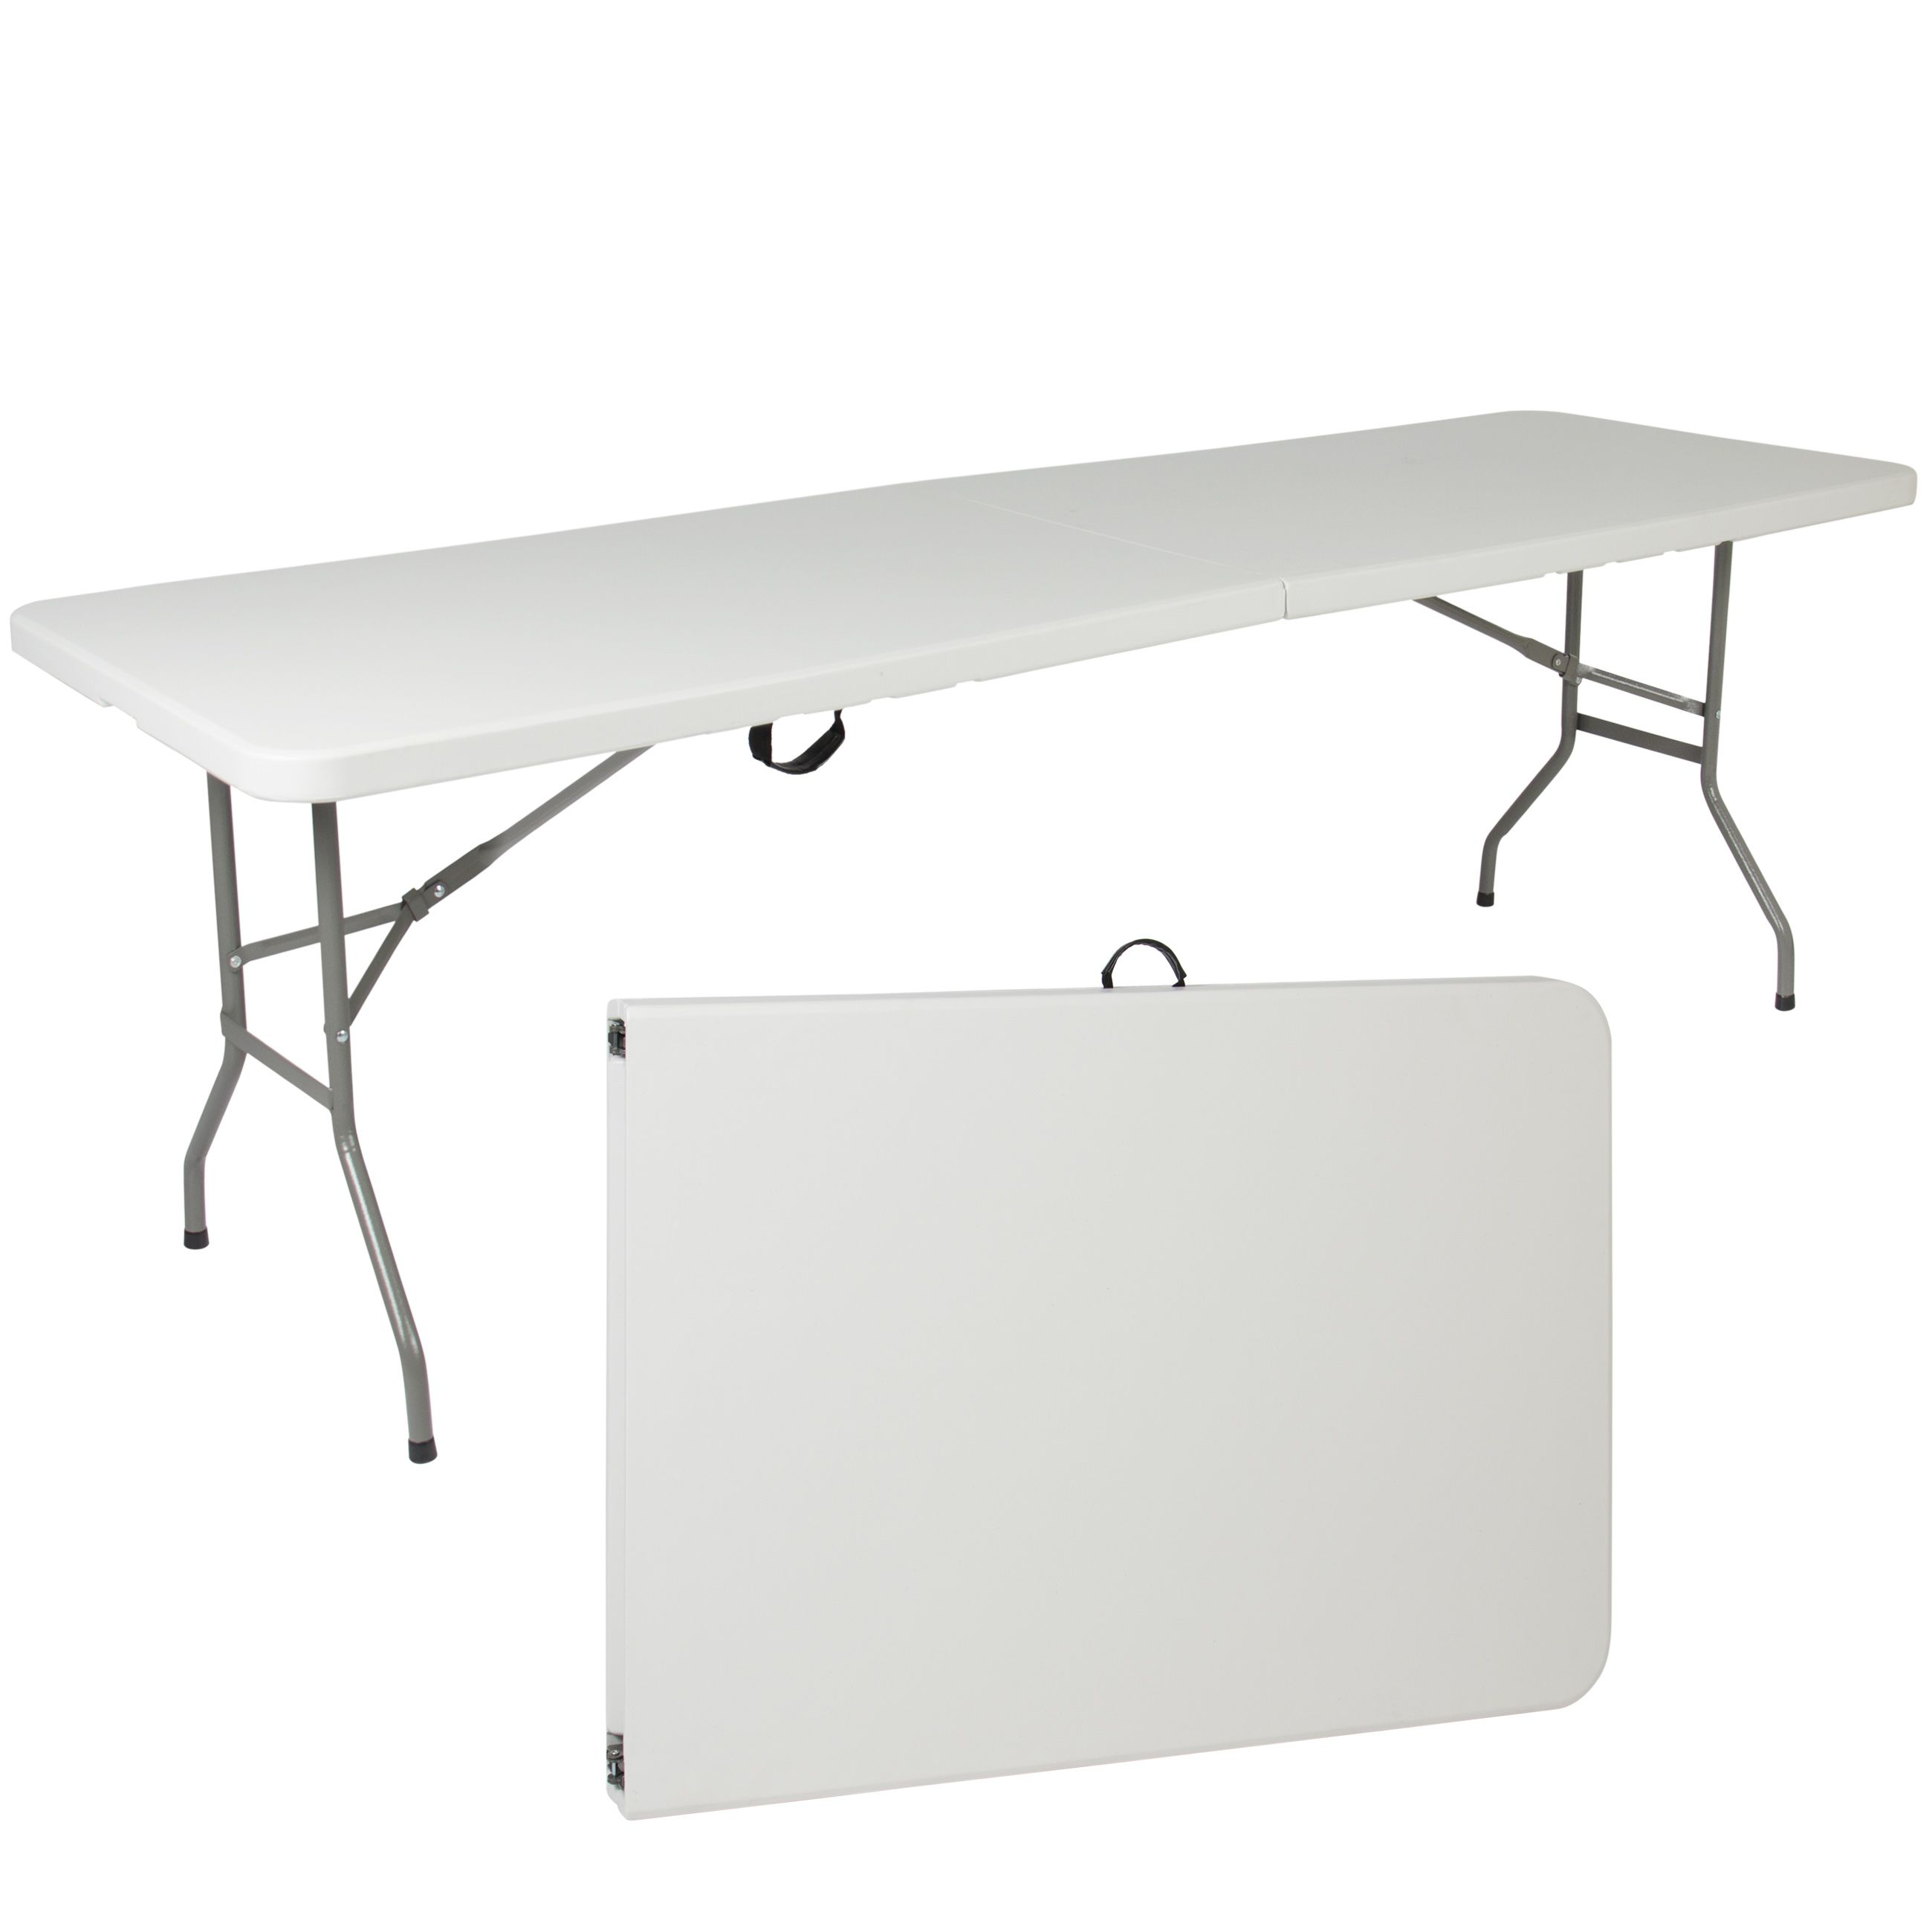 Best Choice Products Is Proud To Present This Brand New 8 Ft Table Great For Hosting Parties And Whenever Family Or Friends Are Invited